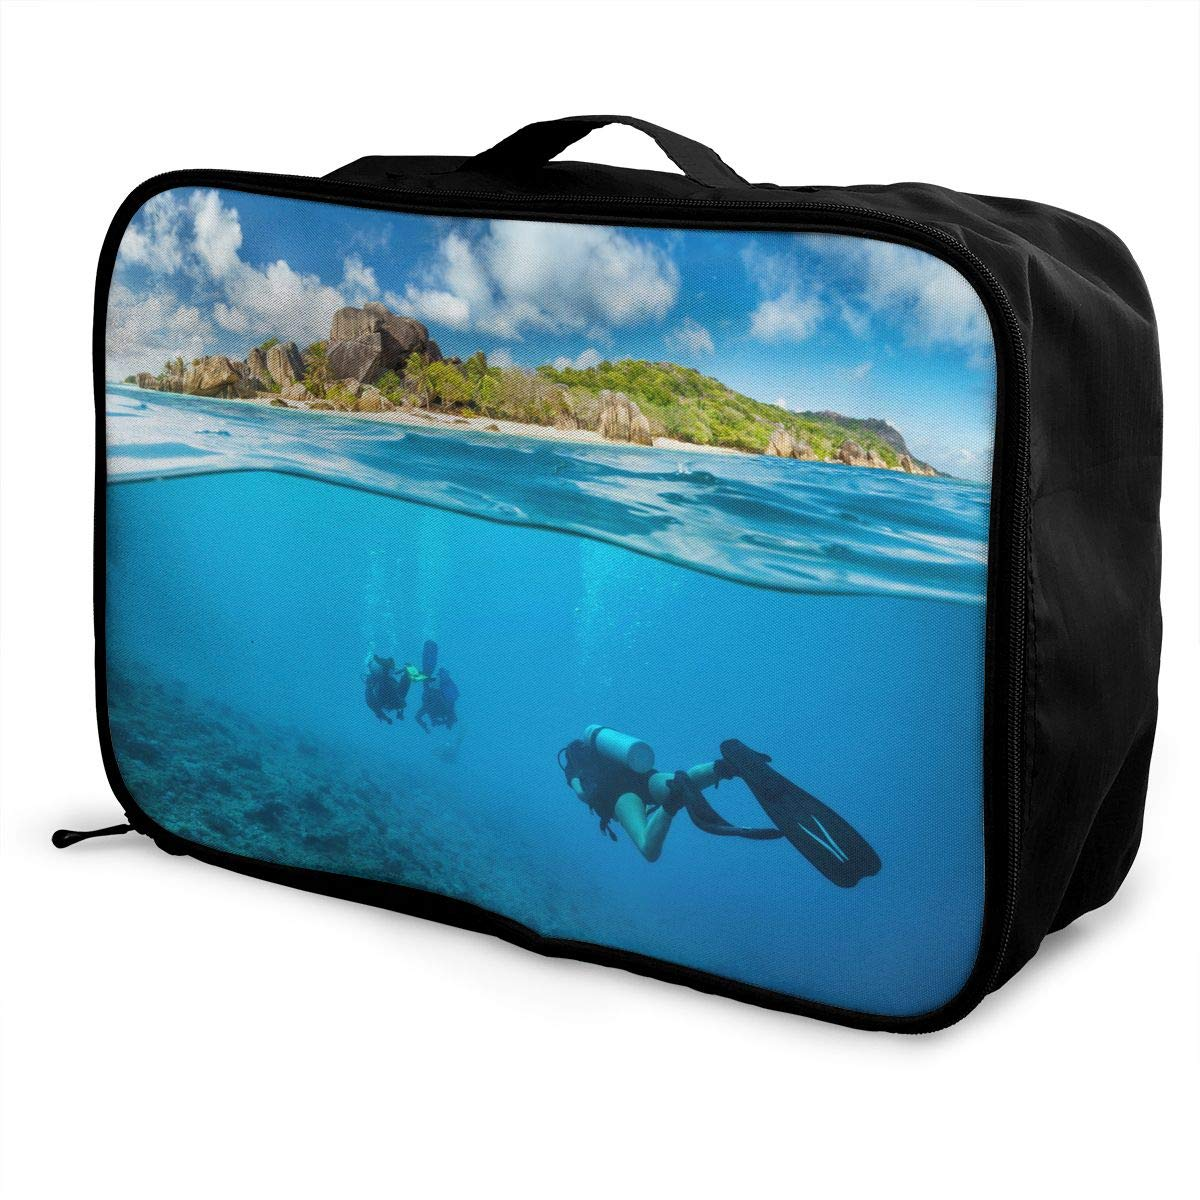 Travel Luggage Duffle Bag Lightweight Portable Handbag Diving Ocean Large Capacity Waterproof Foldable Storage Tote